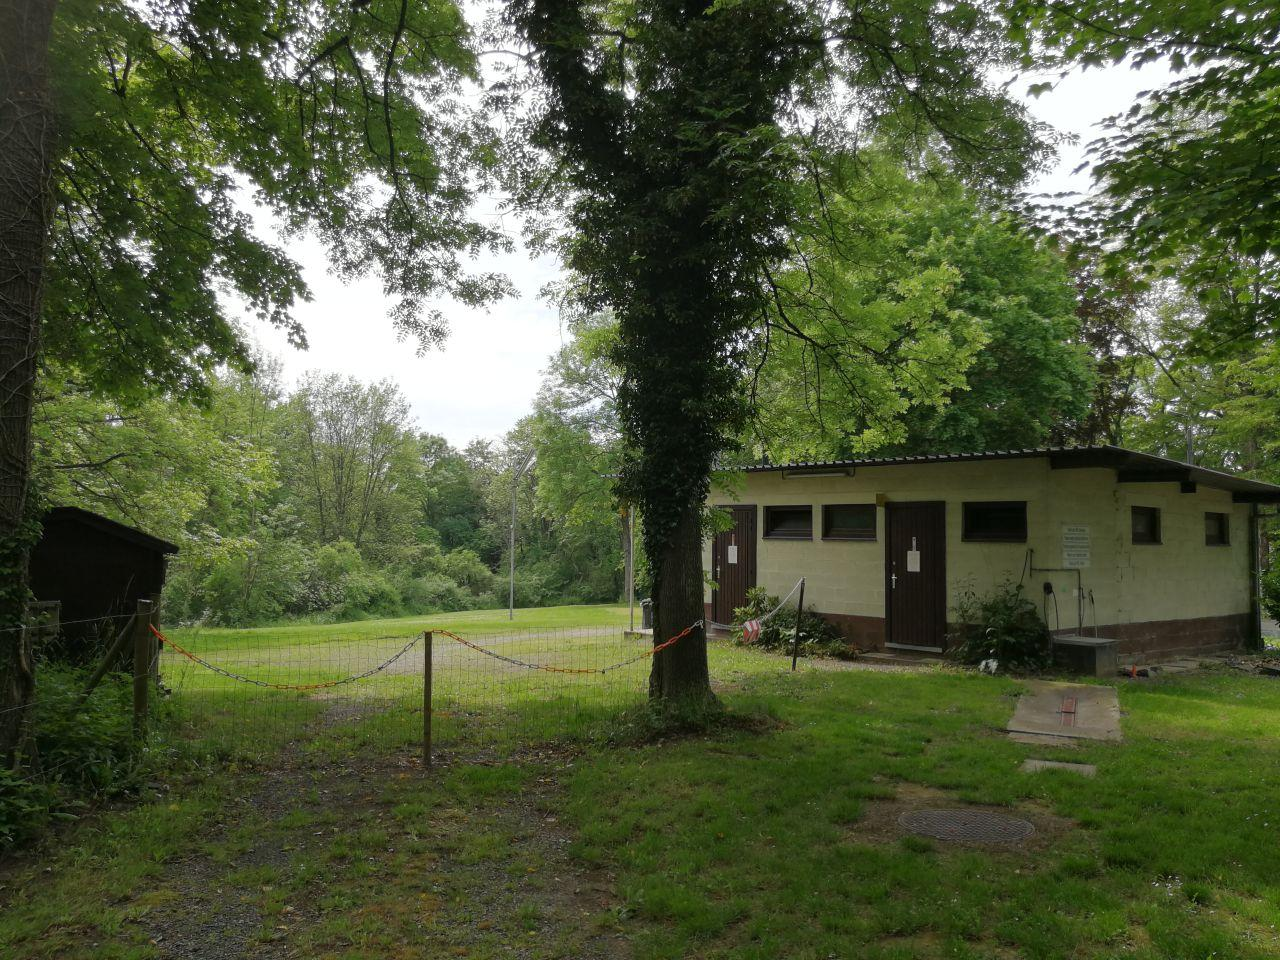 Camping Le Tultay